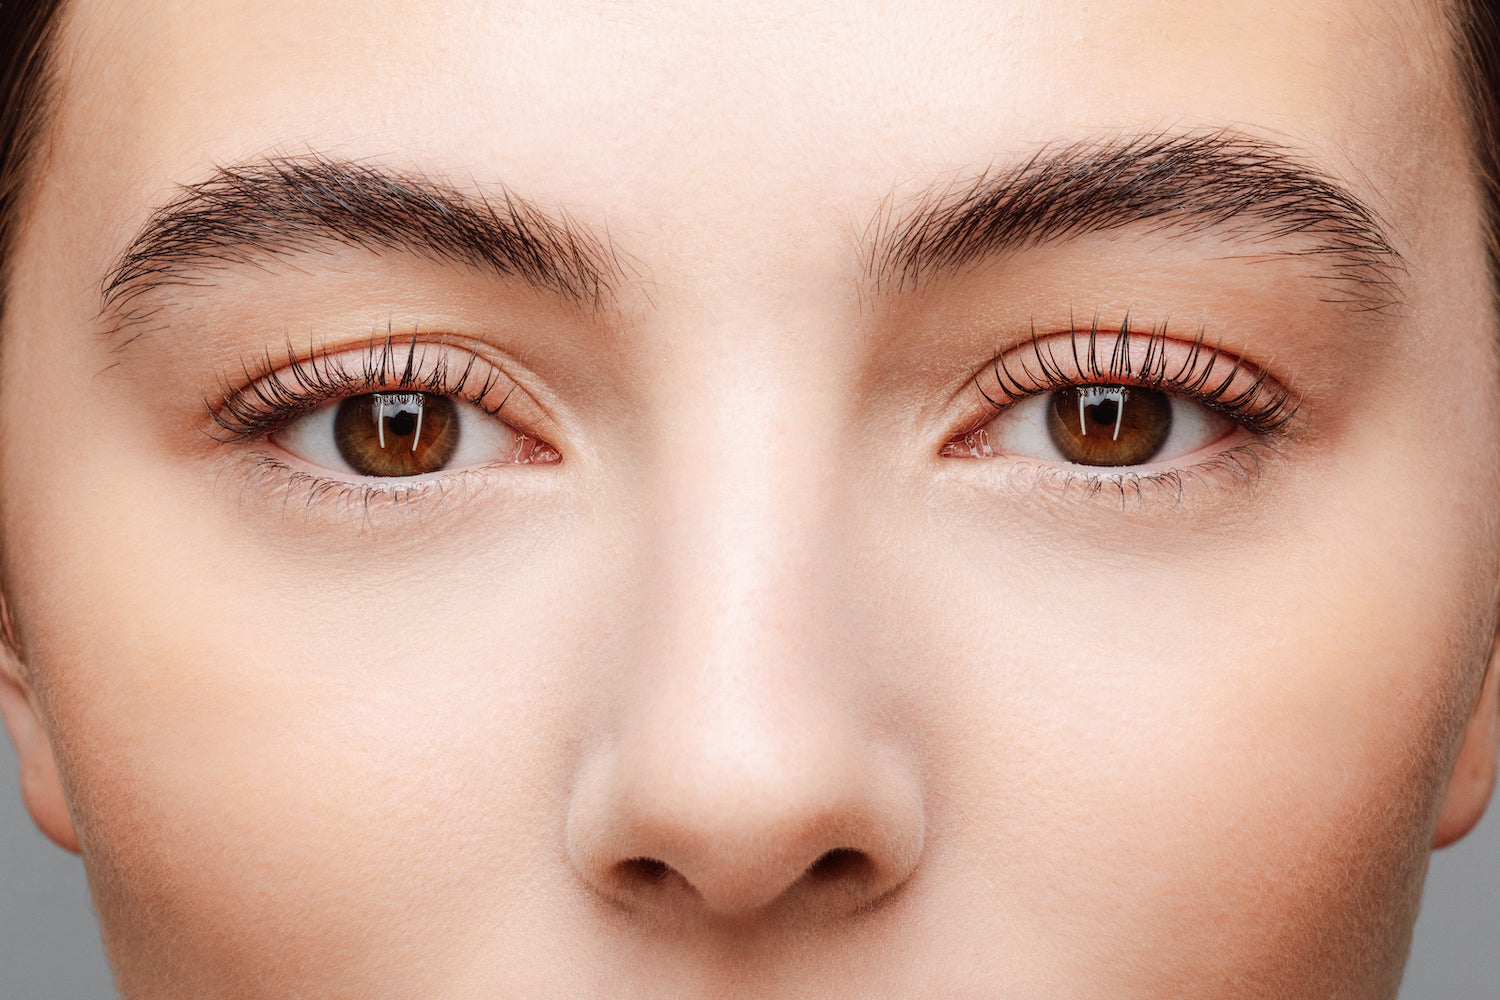 Don't Try This At Home: Lash Lifts